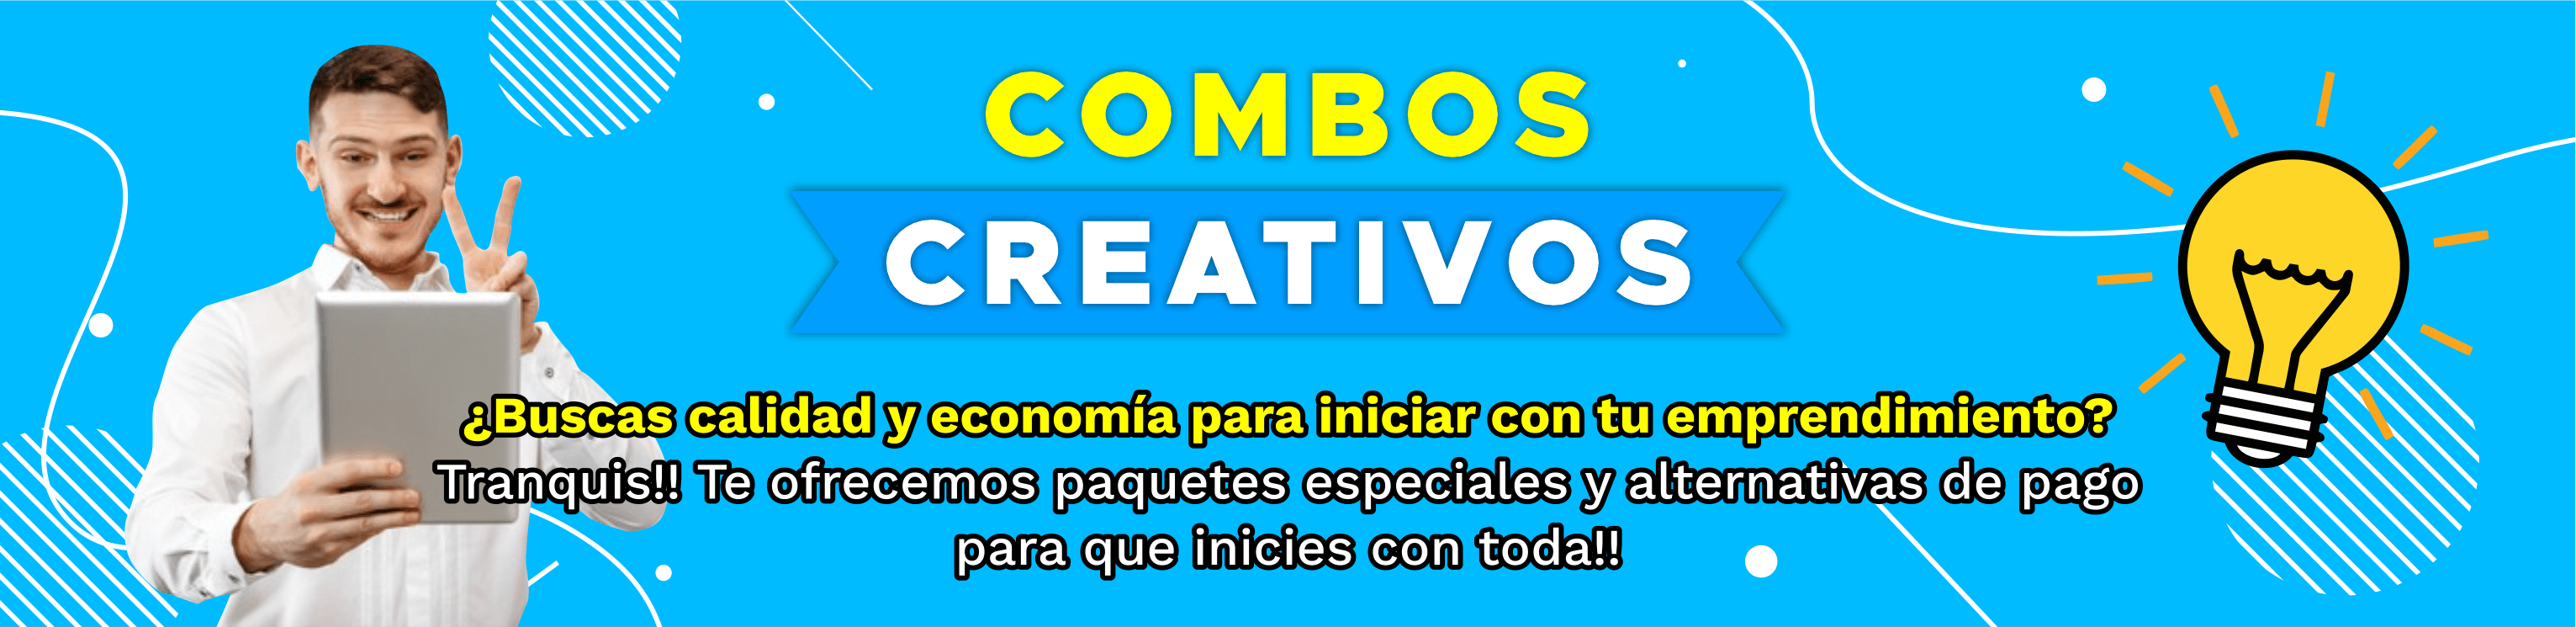 Publiexpansion combos creativos-